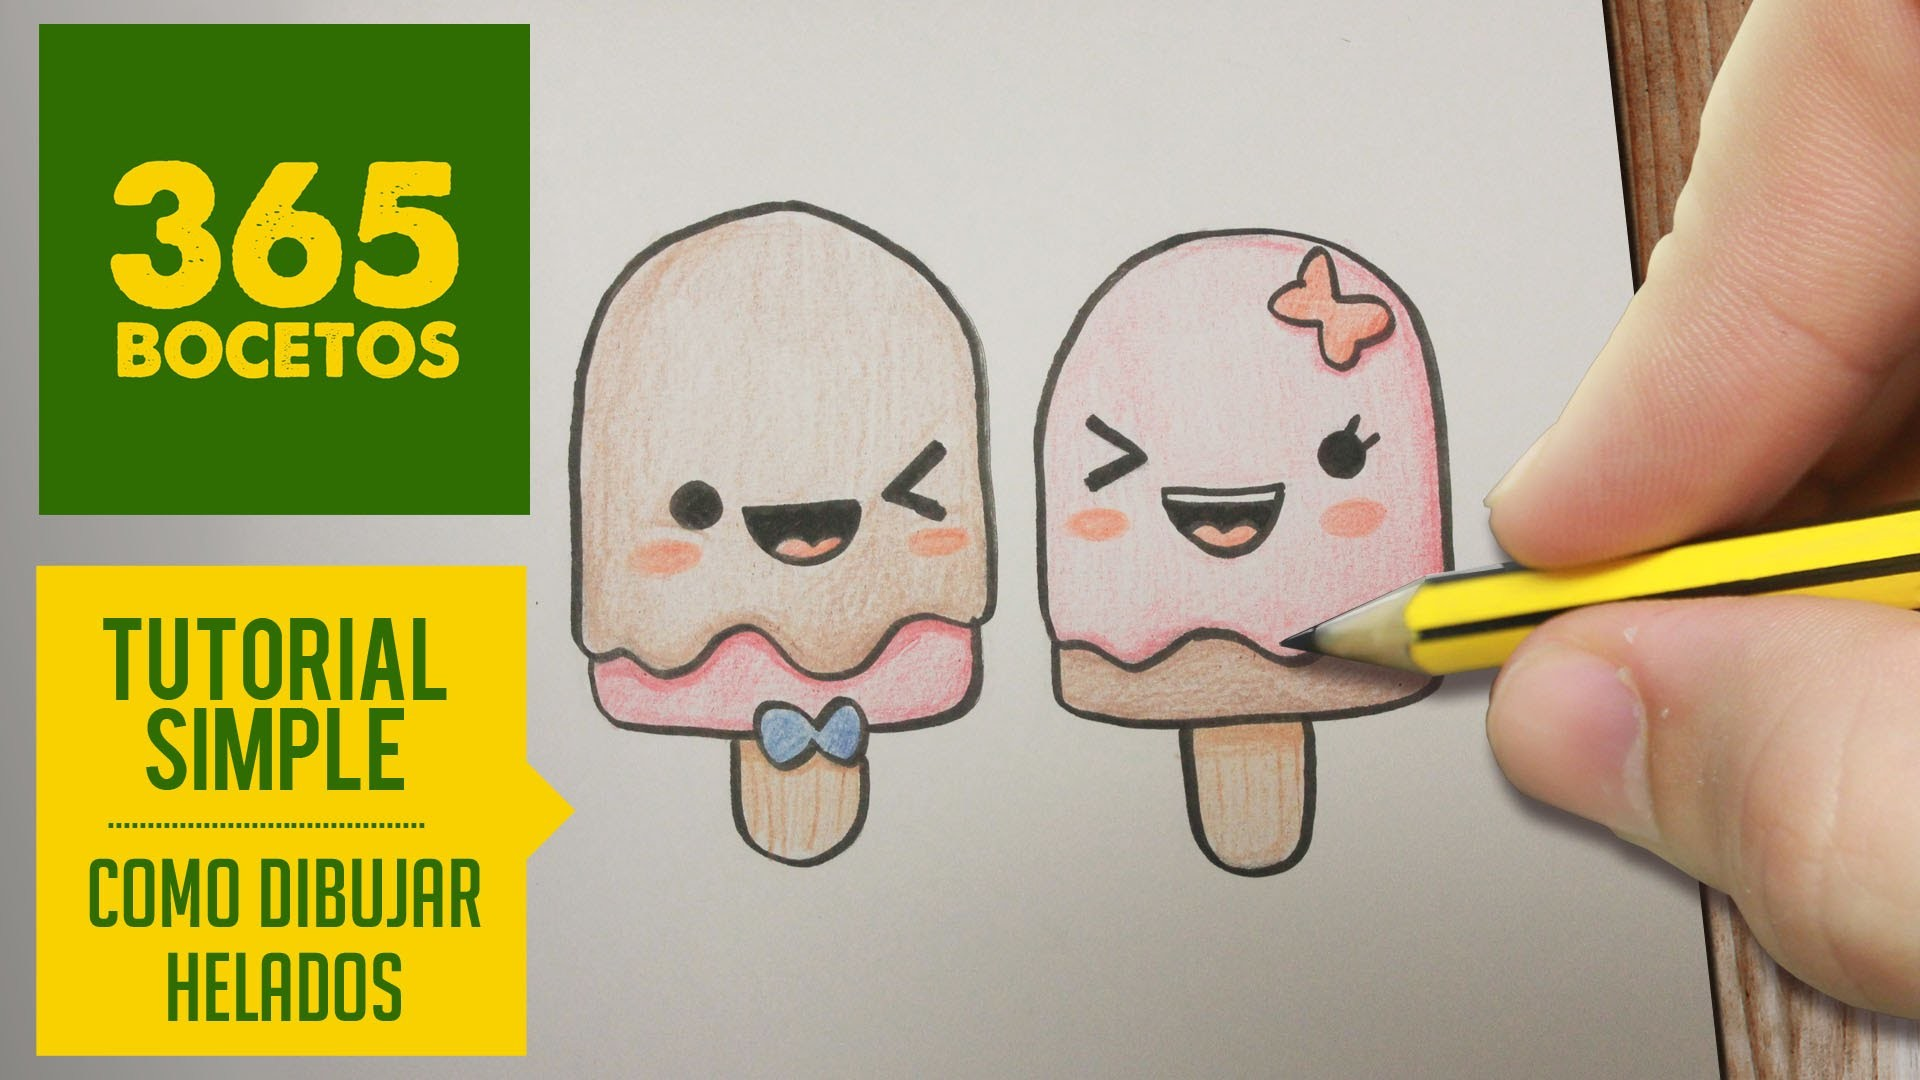 COMO DIBUJAR PALETAS HELADAS KAWAII PASO A PASO - Dibujos kawaii faciles - How to draw an Ice Cream